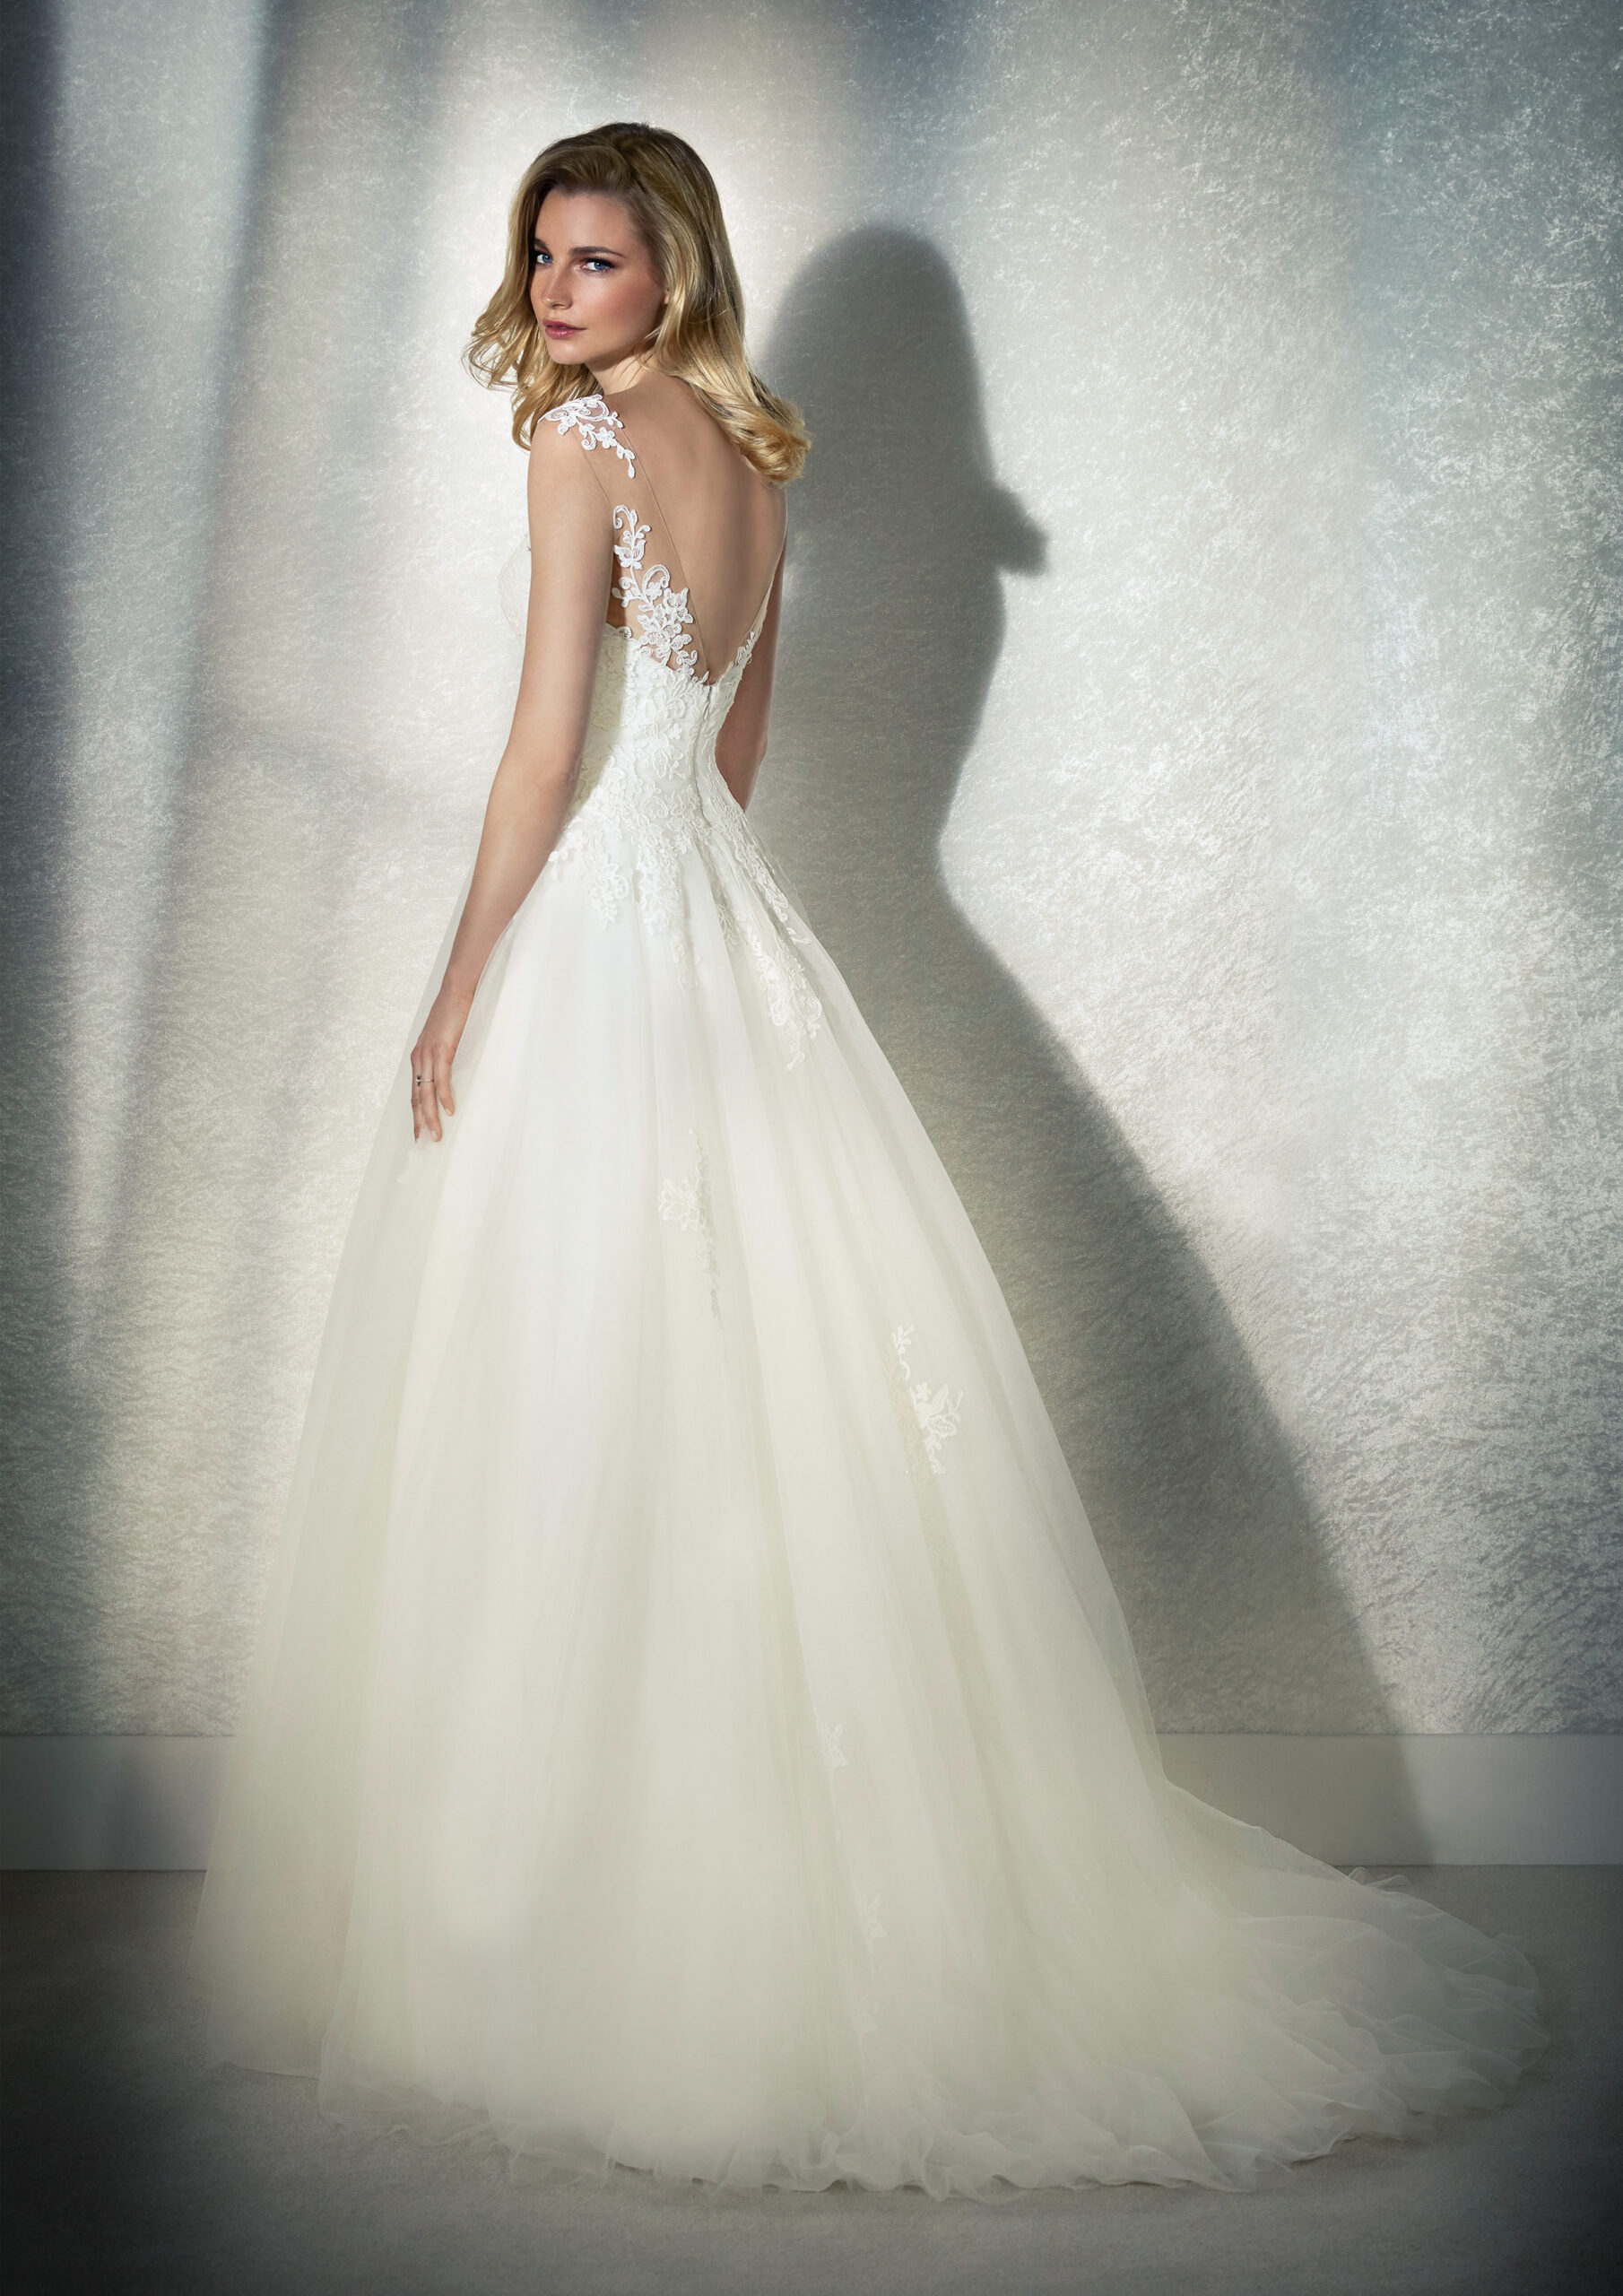 FEMME-C-3-white-one-whiteone-brautkleid-scaled